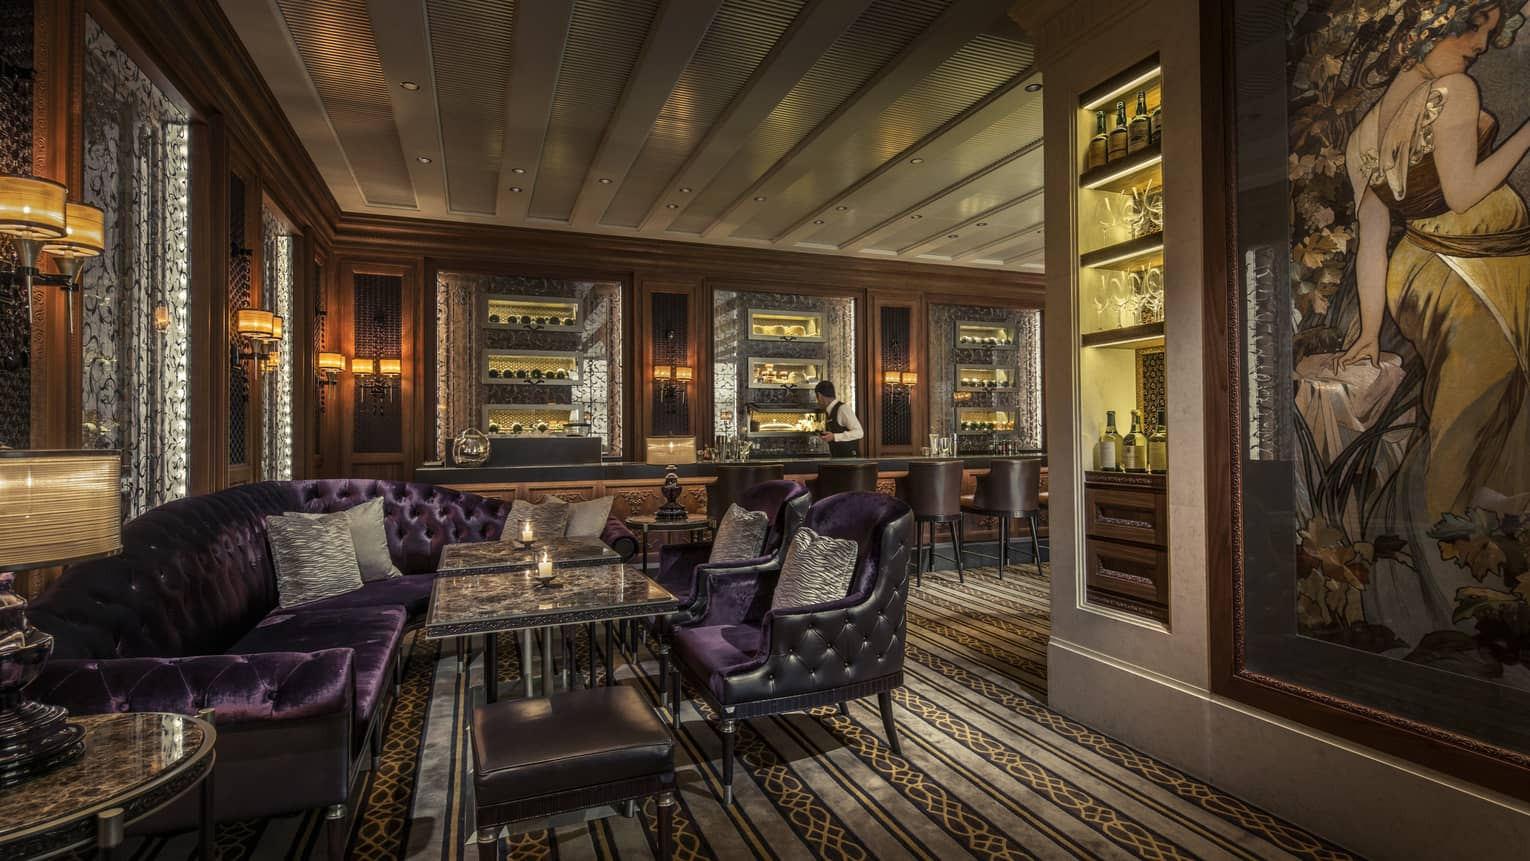 Dimly-lit Caprice Bar lounge with velvet purple sofas, leather armchairs, liquor on shelves with light